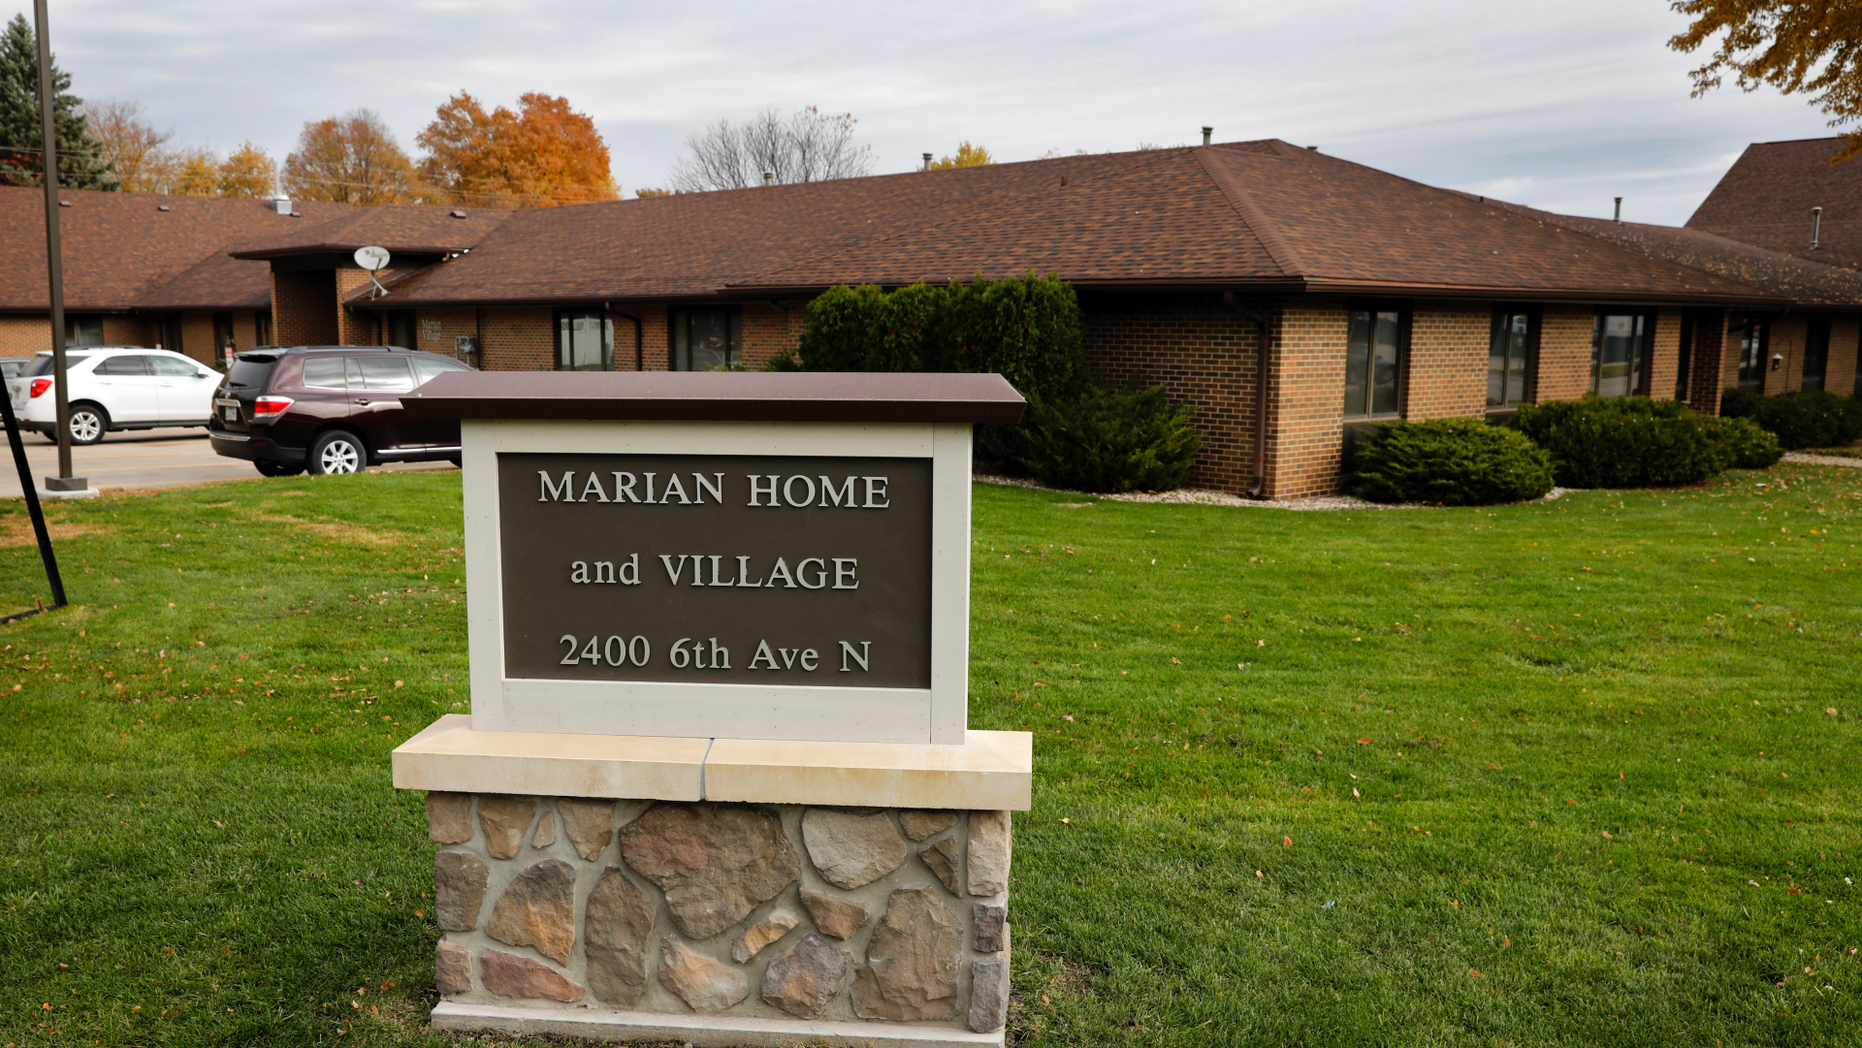 This Oct. 26, 2018 photo shows Marian Home and Village in Fort Dodge, Iowa. A bishop is vowing to relocate a priest who had been placed in the Iowa retirement home next to a Catholic school, despite a history of sexually abusing boys. The move comes in response to an Associated Press story exposing the church's three-decade cover-up of abuse committed by the Rev. Jerome Coyle. Coyle admitted in 1986 that he had sexually abused approximately 50 boys over the prior 20 years while serving at several parishes in Iowa. (AP Photo/Charlie Neibergall)